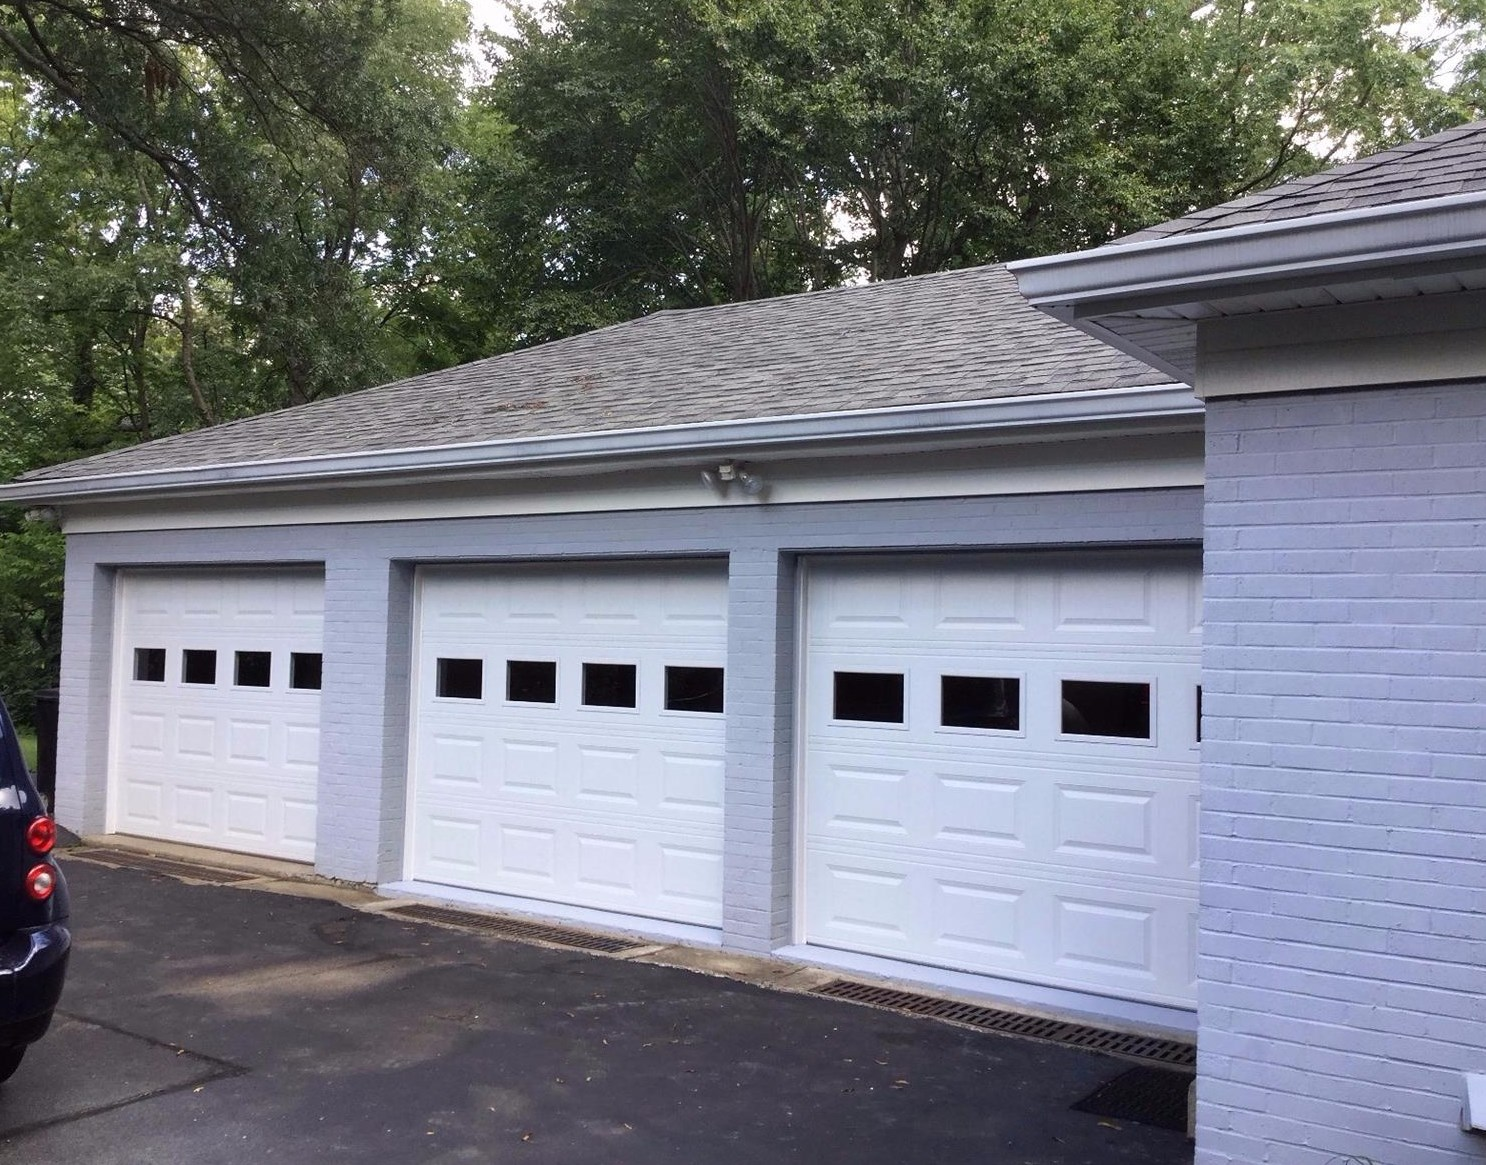 Overhead Door overhead door of washington dc photos : Clinton Garage Door Choice Image - Door Design Ideas